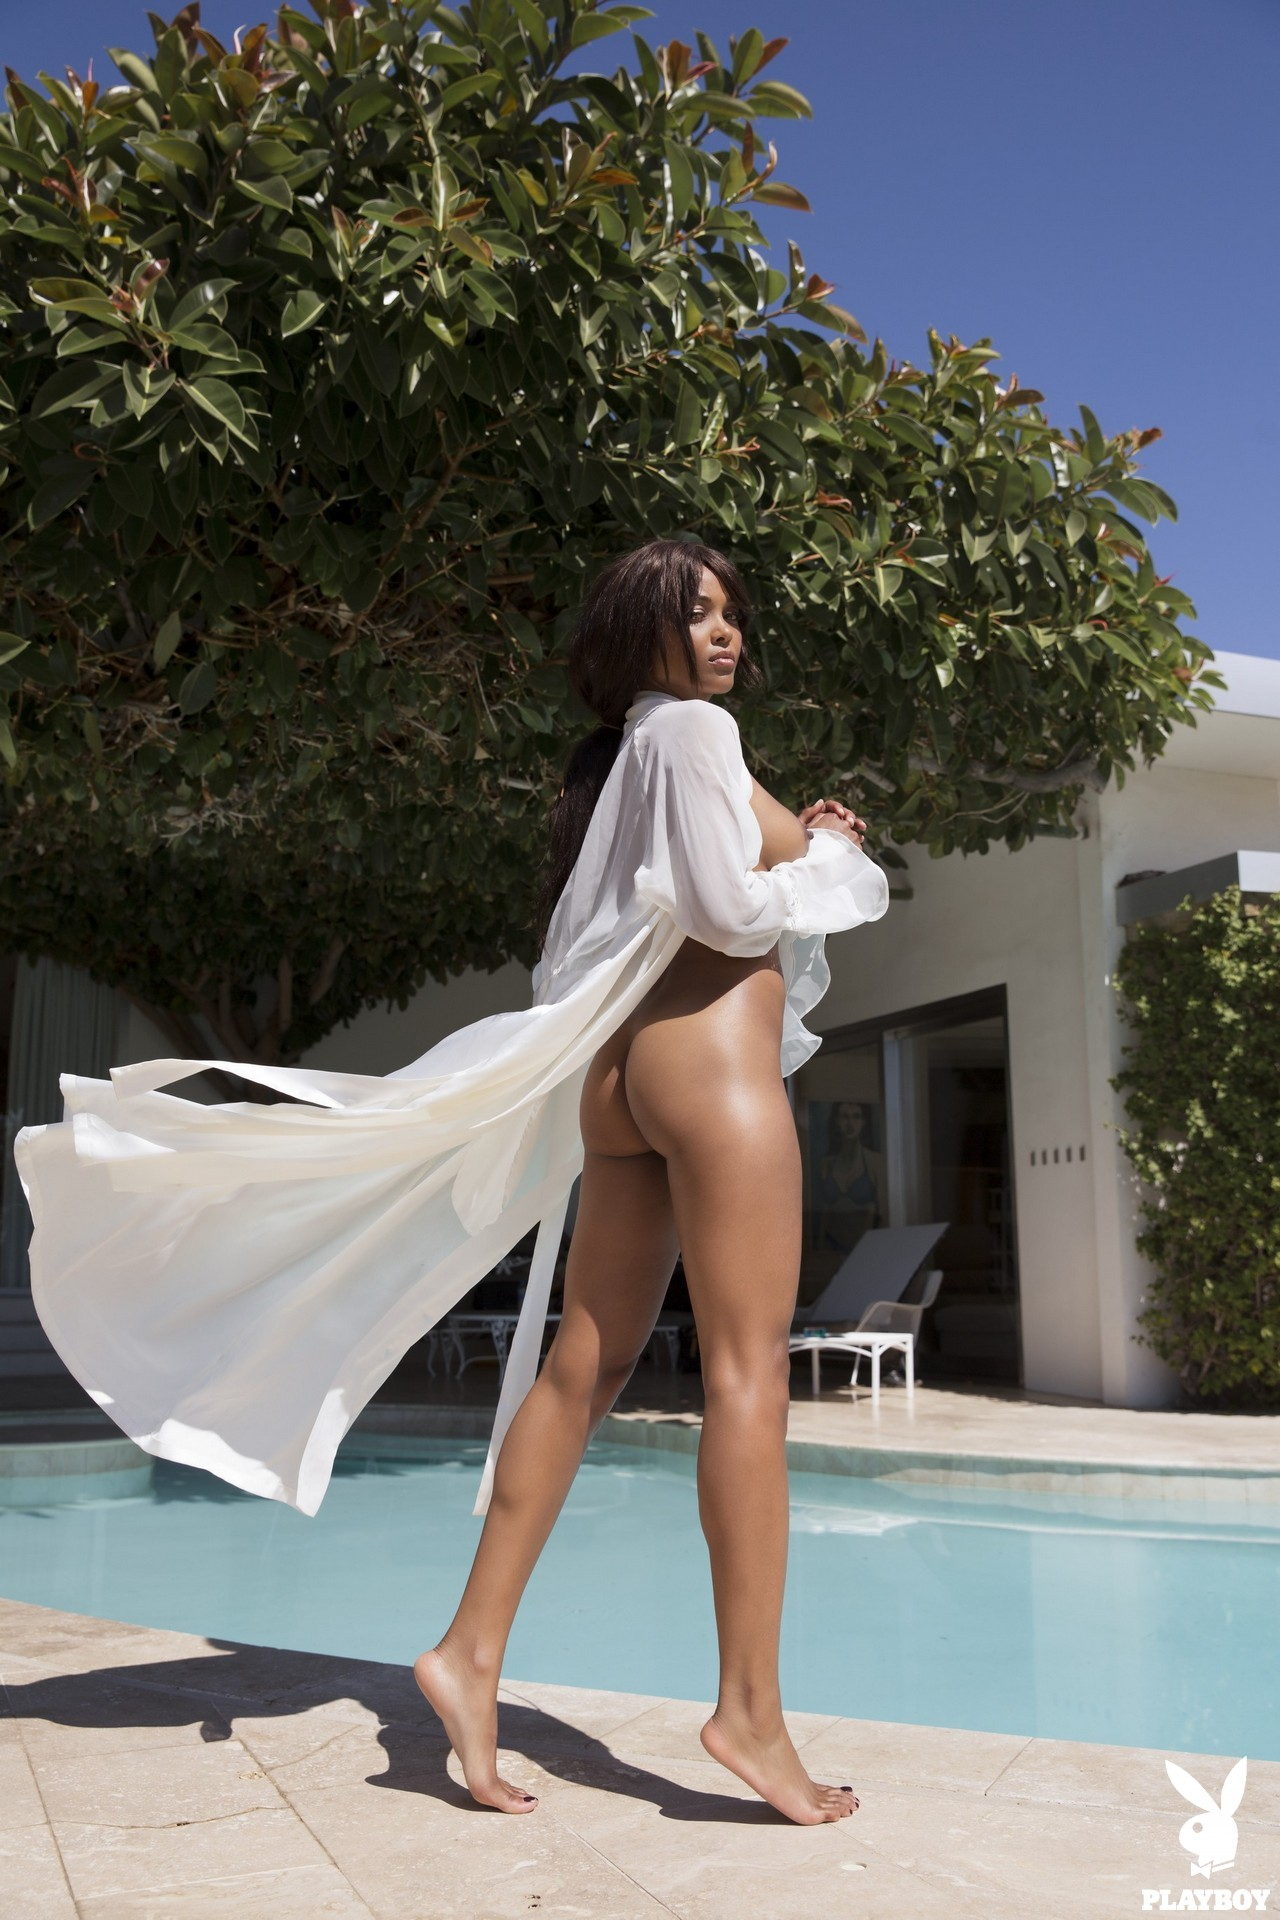 Playmate September 2018: Kirby Griffin 19